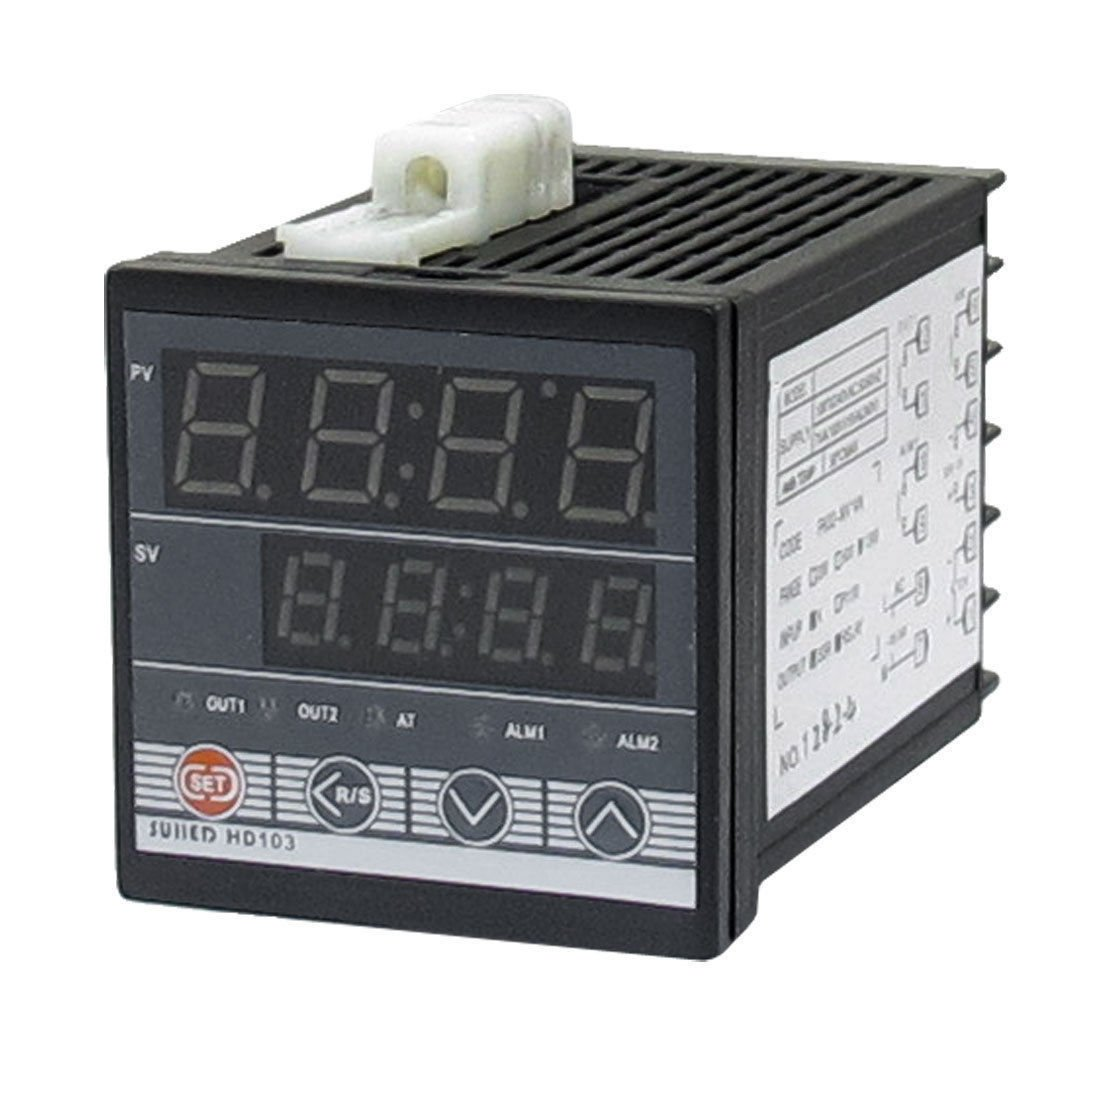 SSR Relay K Type Thermocouple PV SV Display Digital PID Temperature Controller